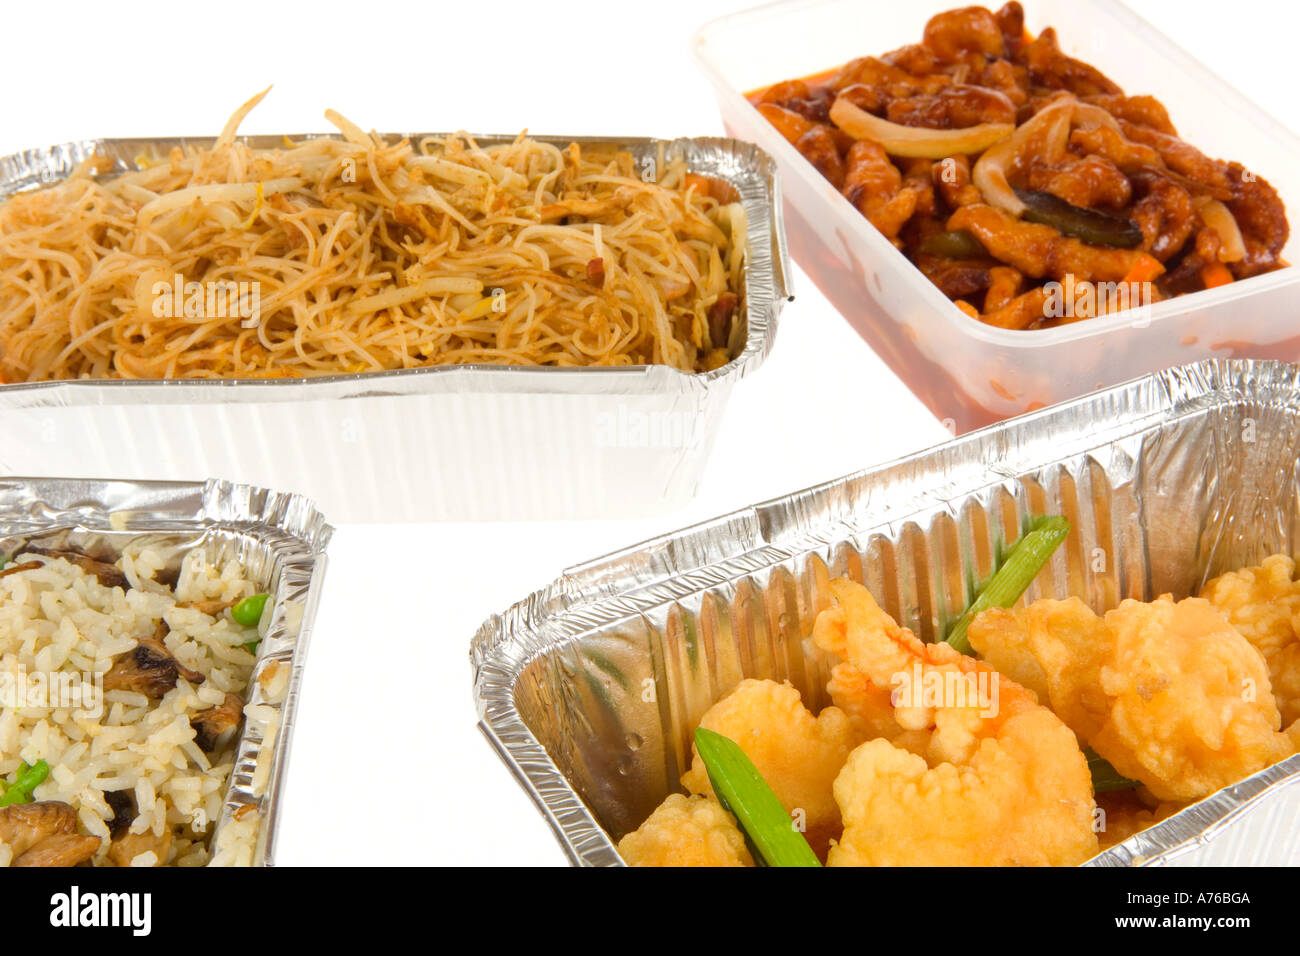 Chinese Takeaway Chinese Takeaway Containers Of Freshly Prepared Food On A